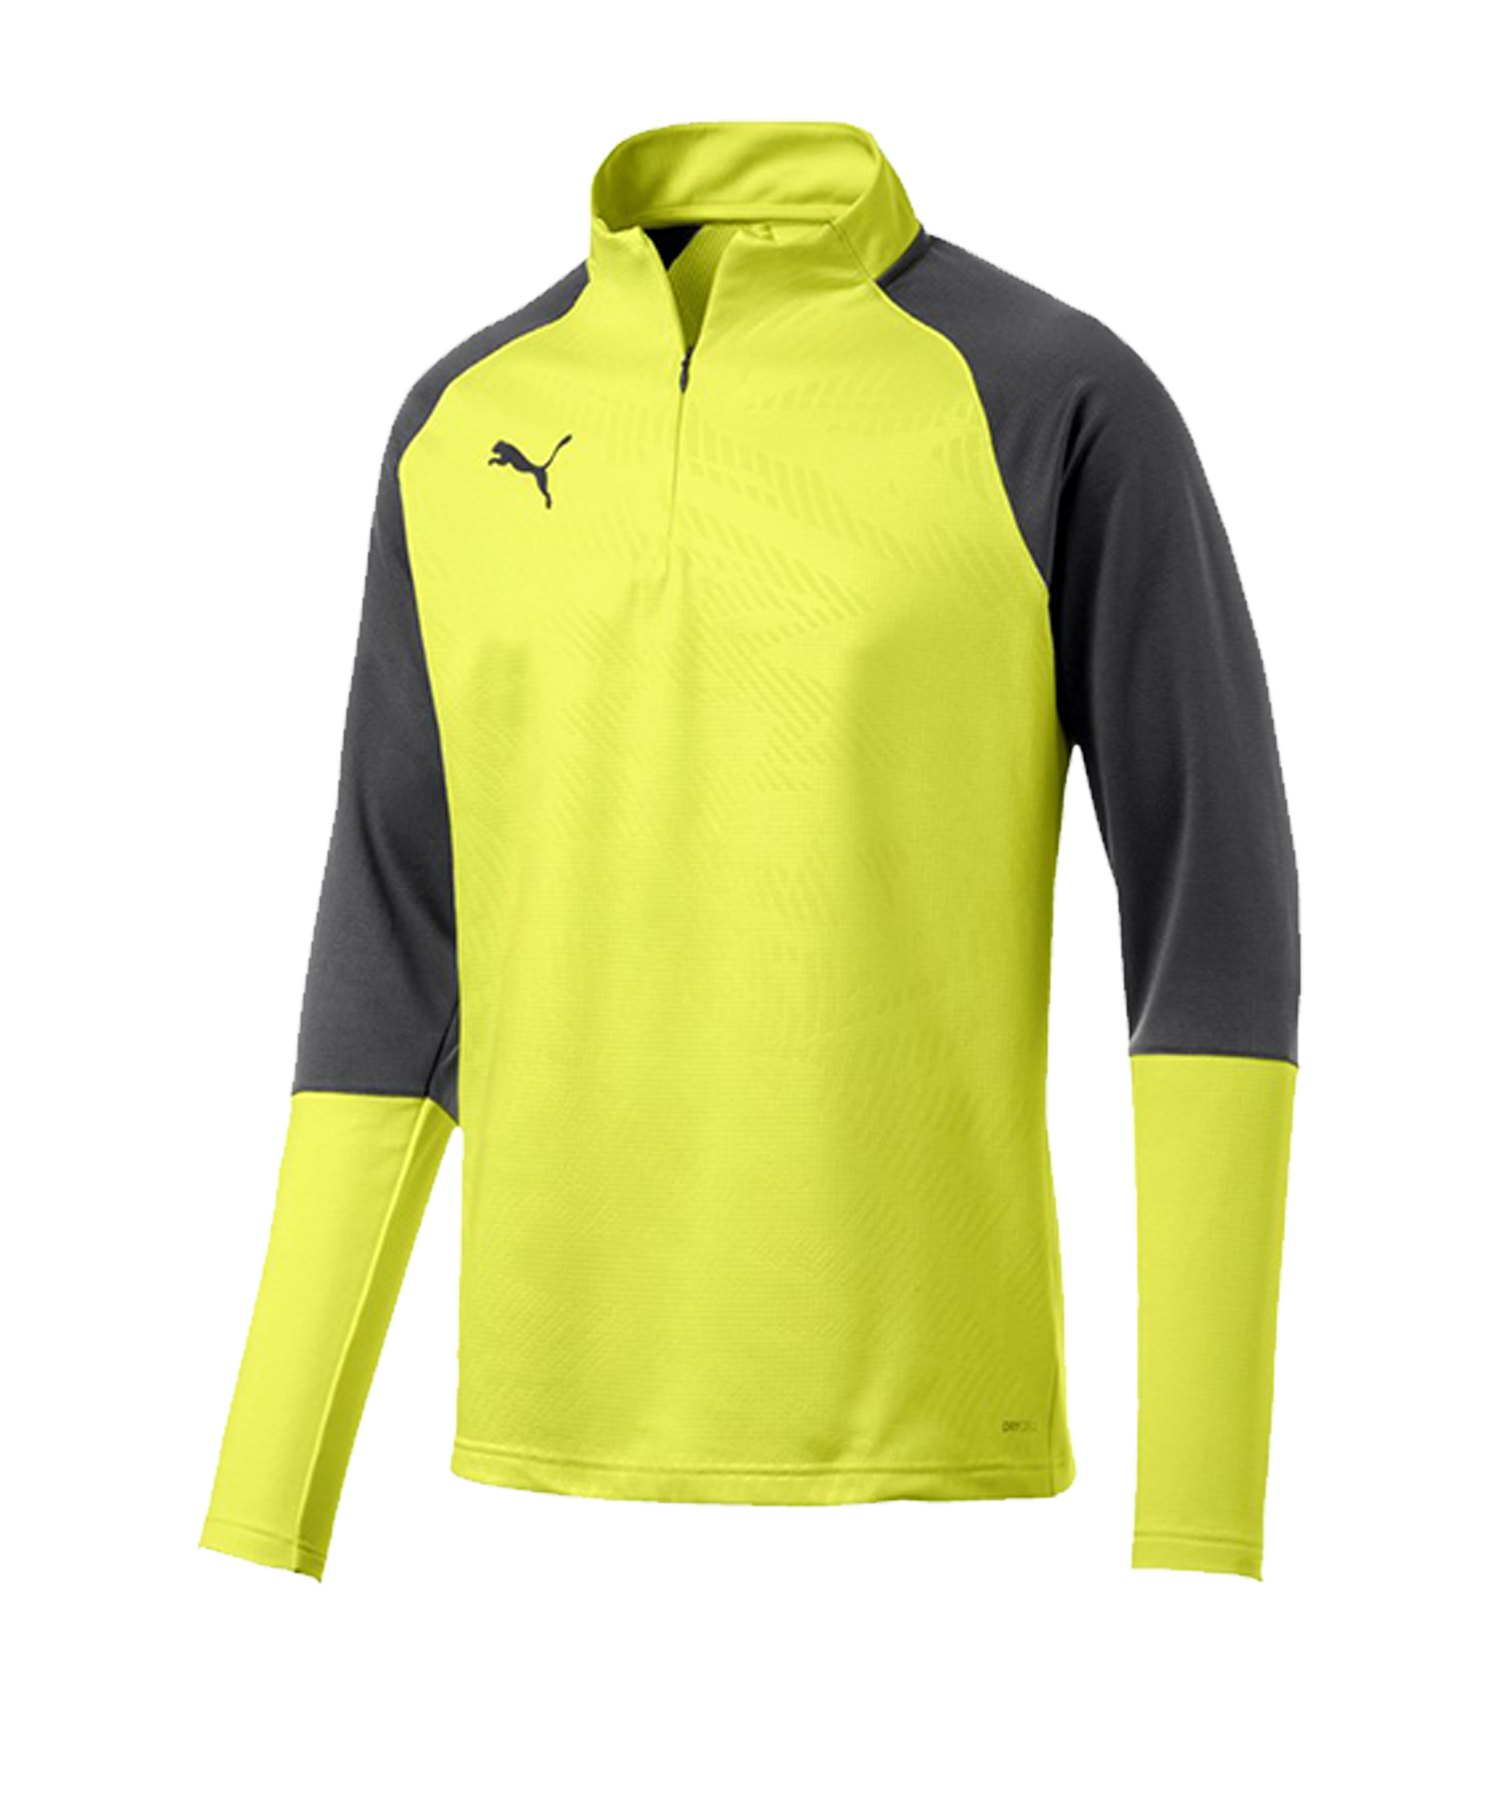 PUMA CUP Training Core 1/4 Zip Top Gelb F16 - gelb